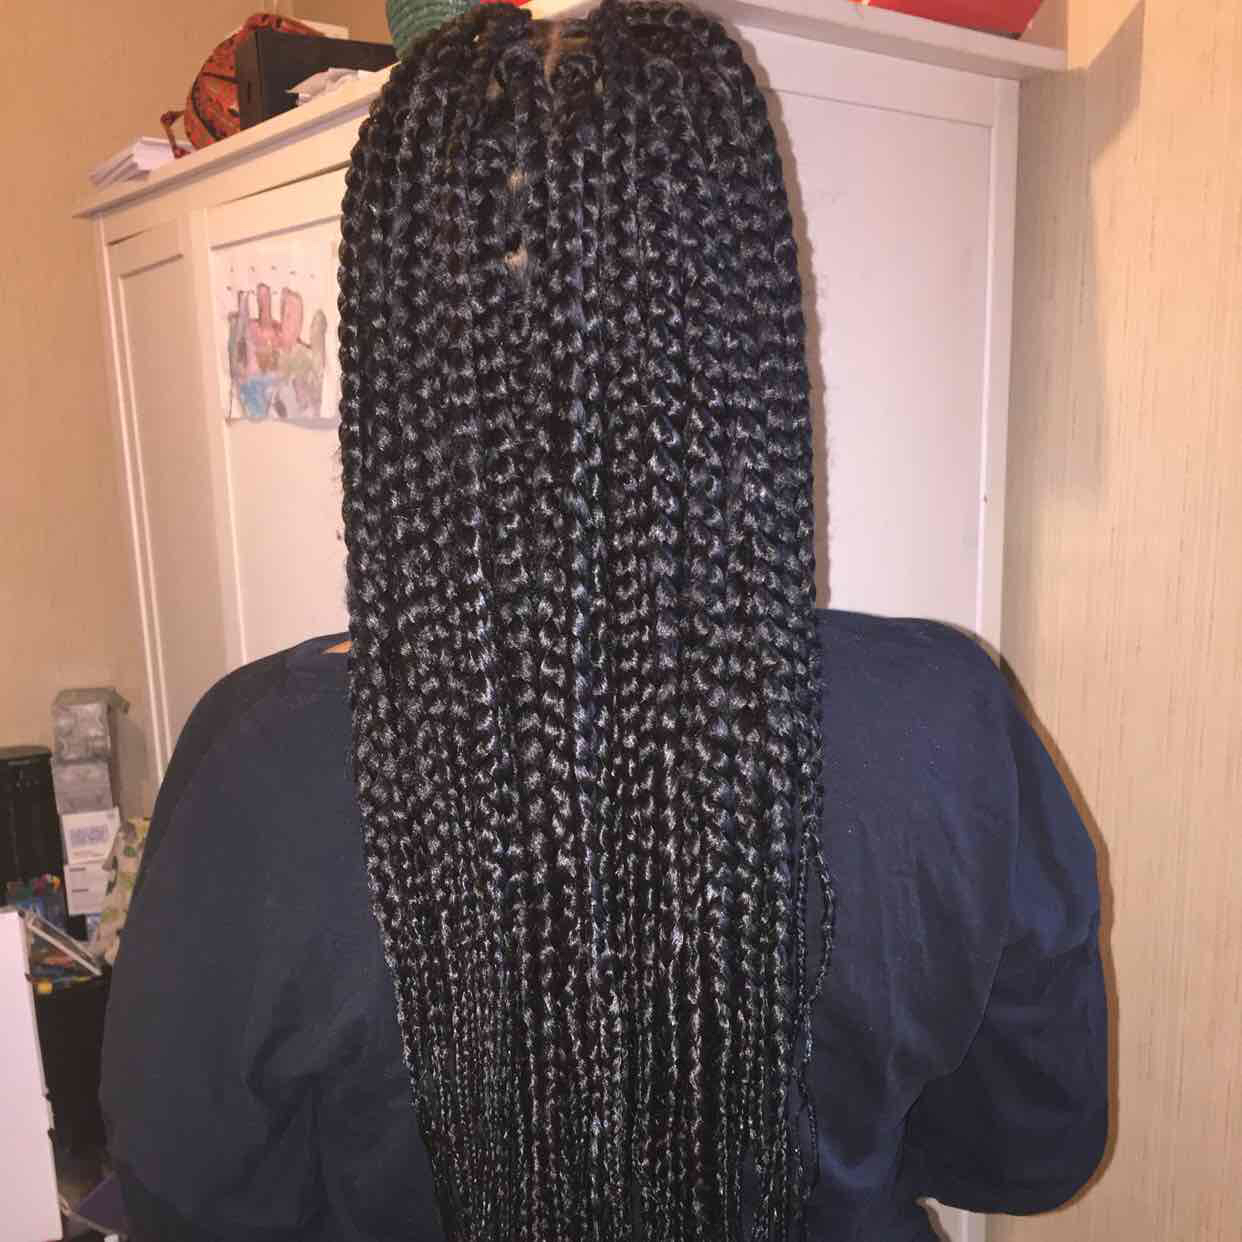 salon de coiffure afro tresse tresses box braids crochet braids vanilles tissages paris 75 77 78 91 92 93 94 95 SRYPQBJP